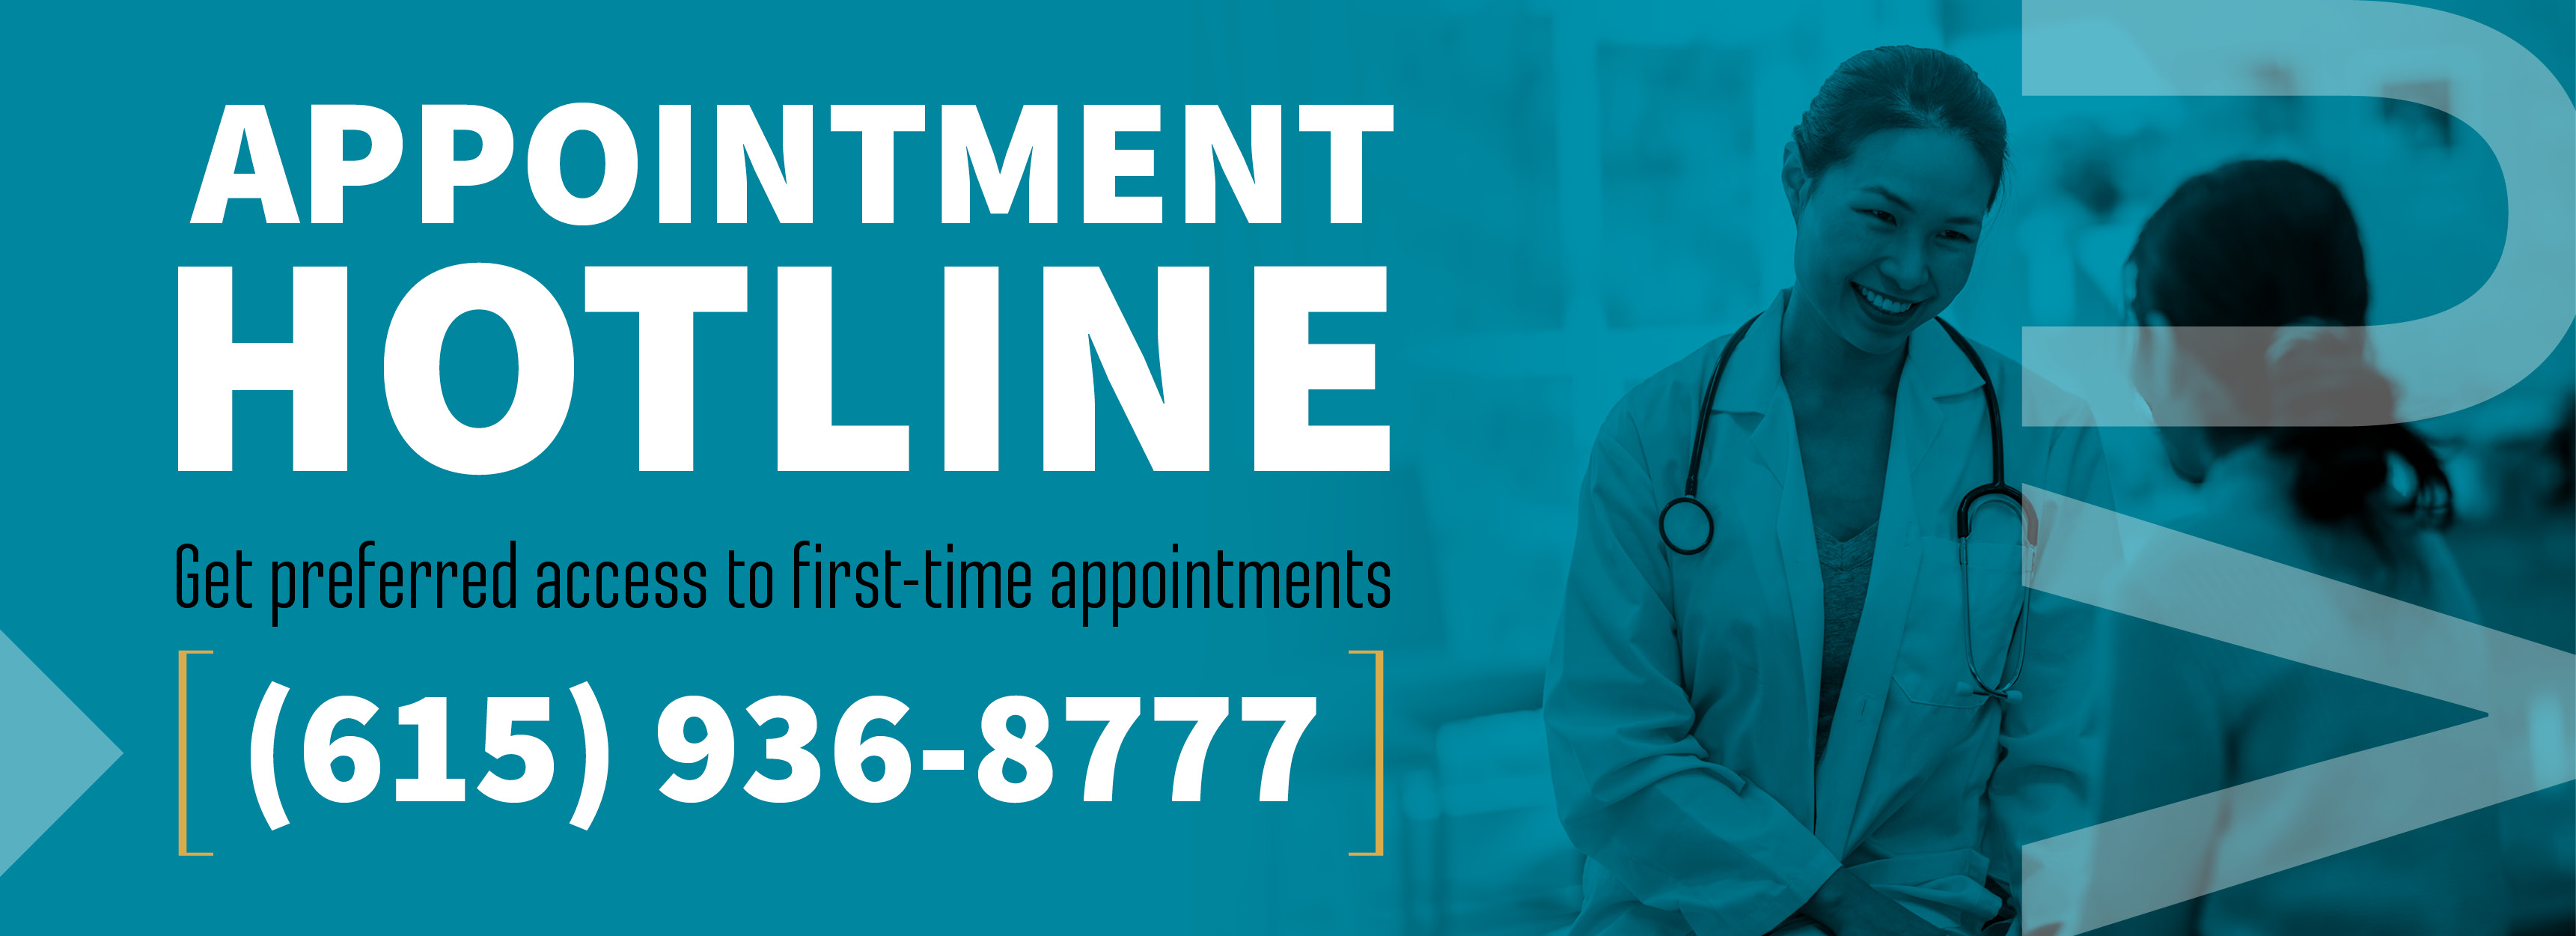 HR Hotline for preferred access to first-time appointments. 615-936-8777